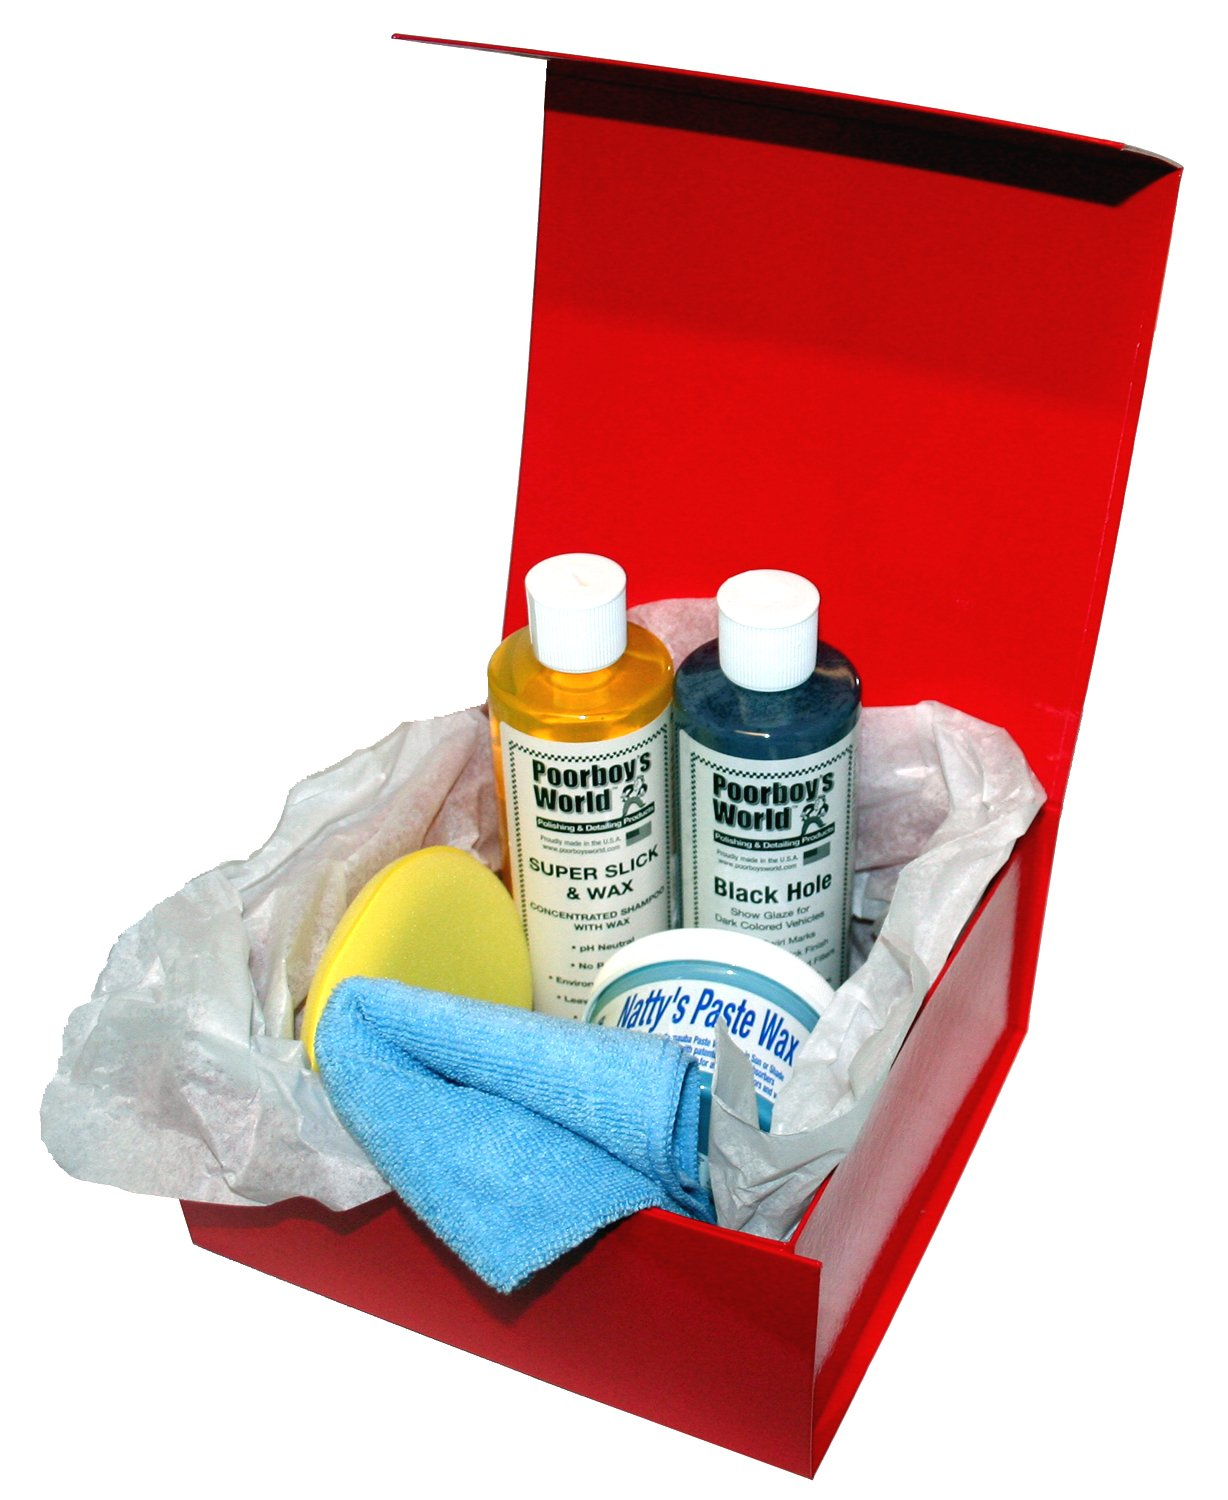 Car Cleaning Gift Box Poorboys Set DARK KIT Incl. Black Hole, Shampoo, Nattys Blue Wax